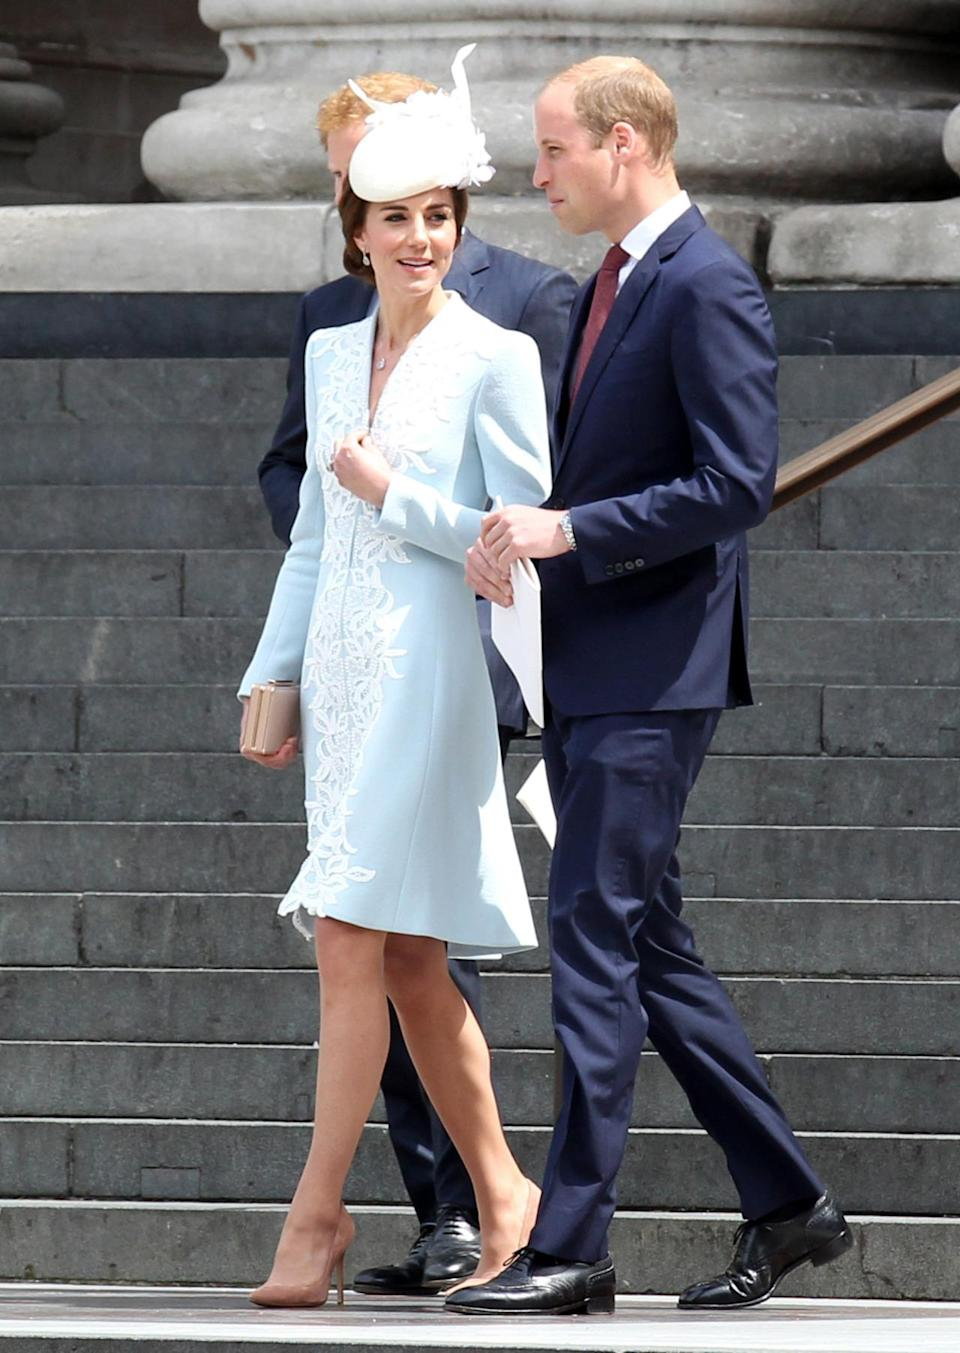 <p>The Duchess of Cambridge wore a bespoke Catherine Walker coat dress. The pastel blue coat featured intricate white embroidery. <i><i>(Photo: Rex Features)</i></i><br></p>